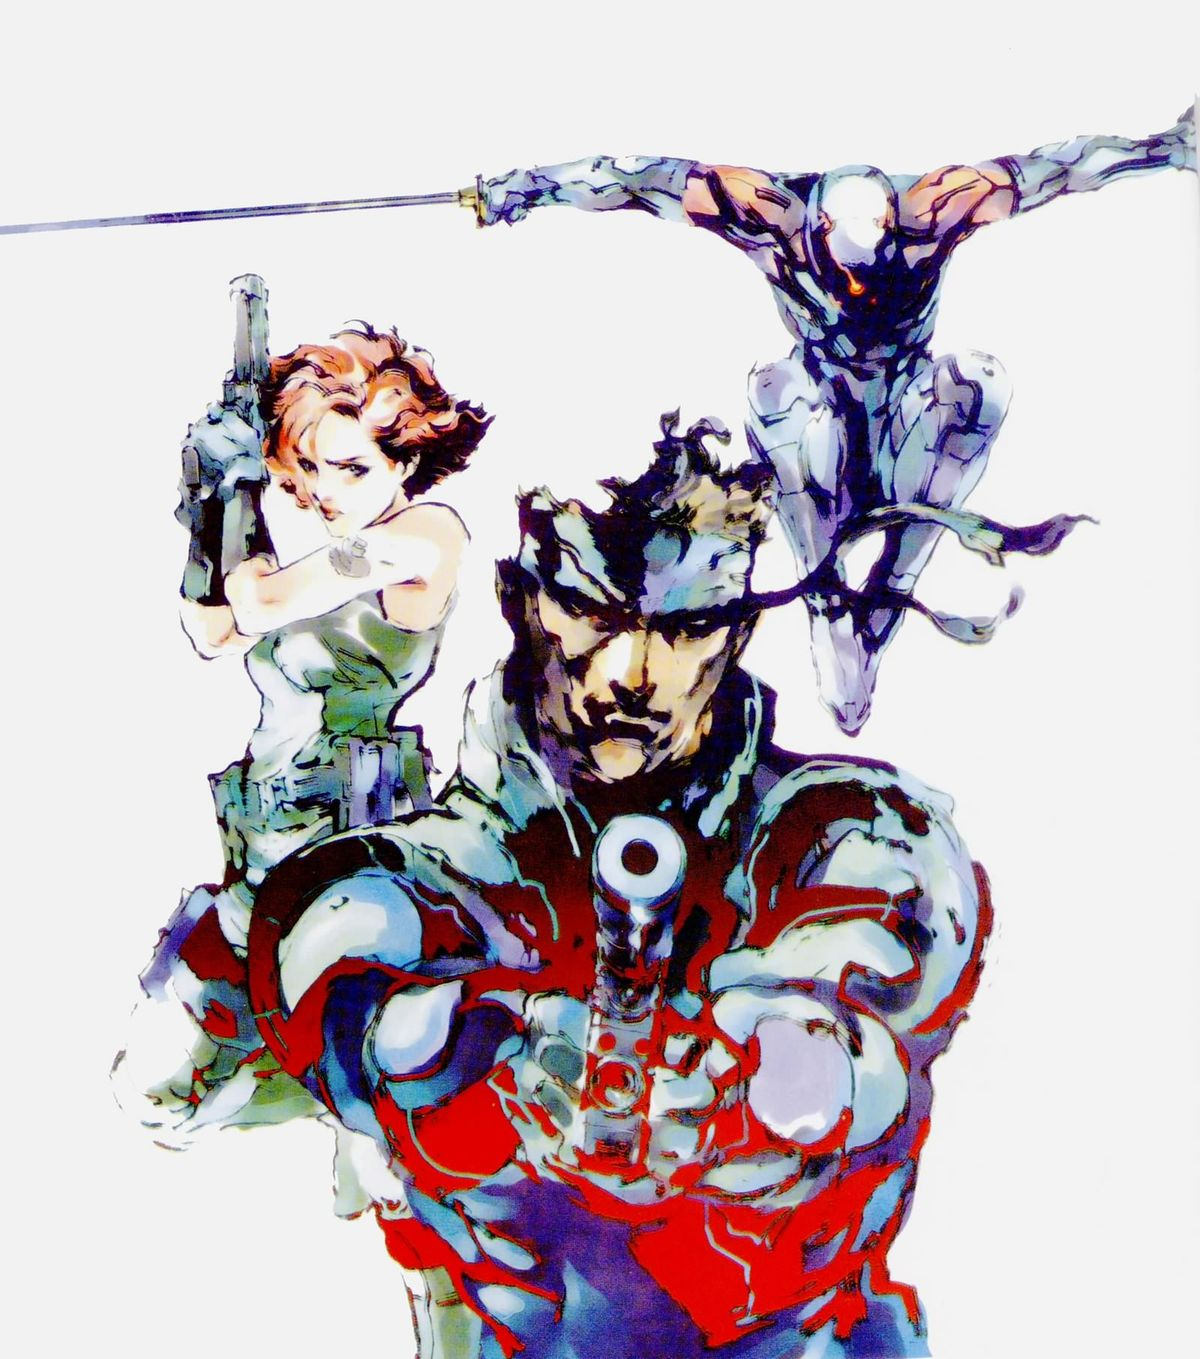 Metal Gear Nes Wallpaper Metal Gear Solid 1 The Twin